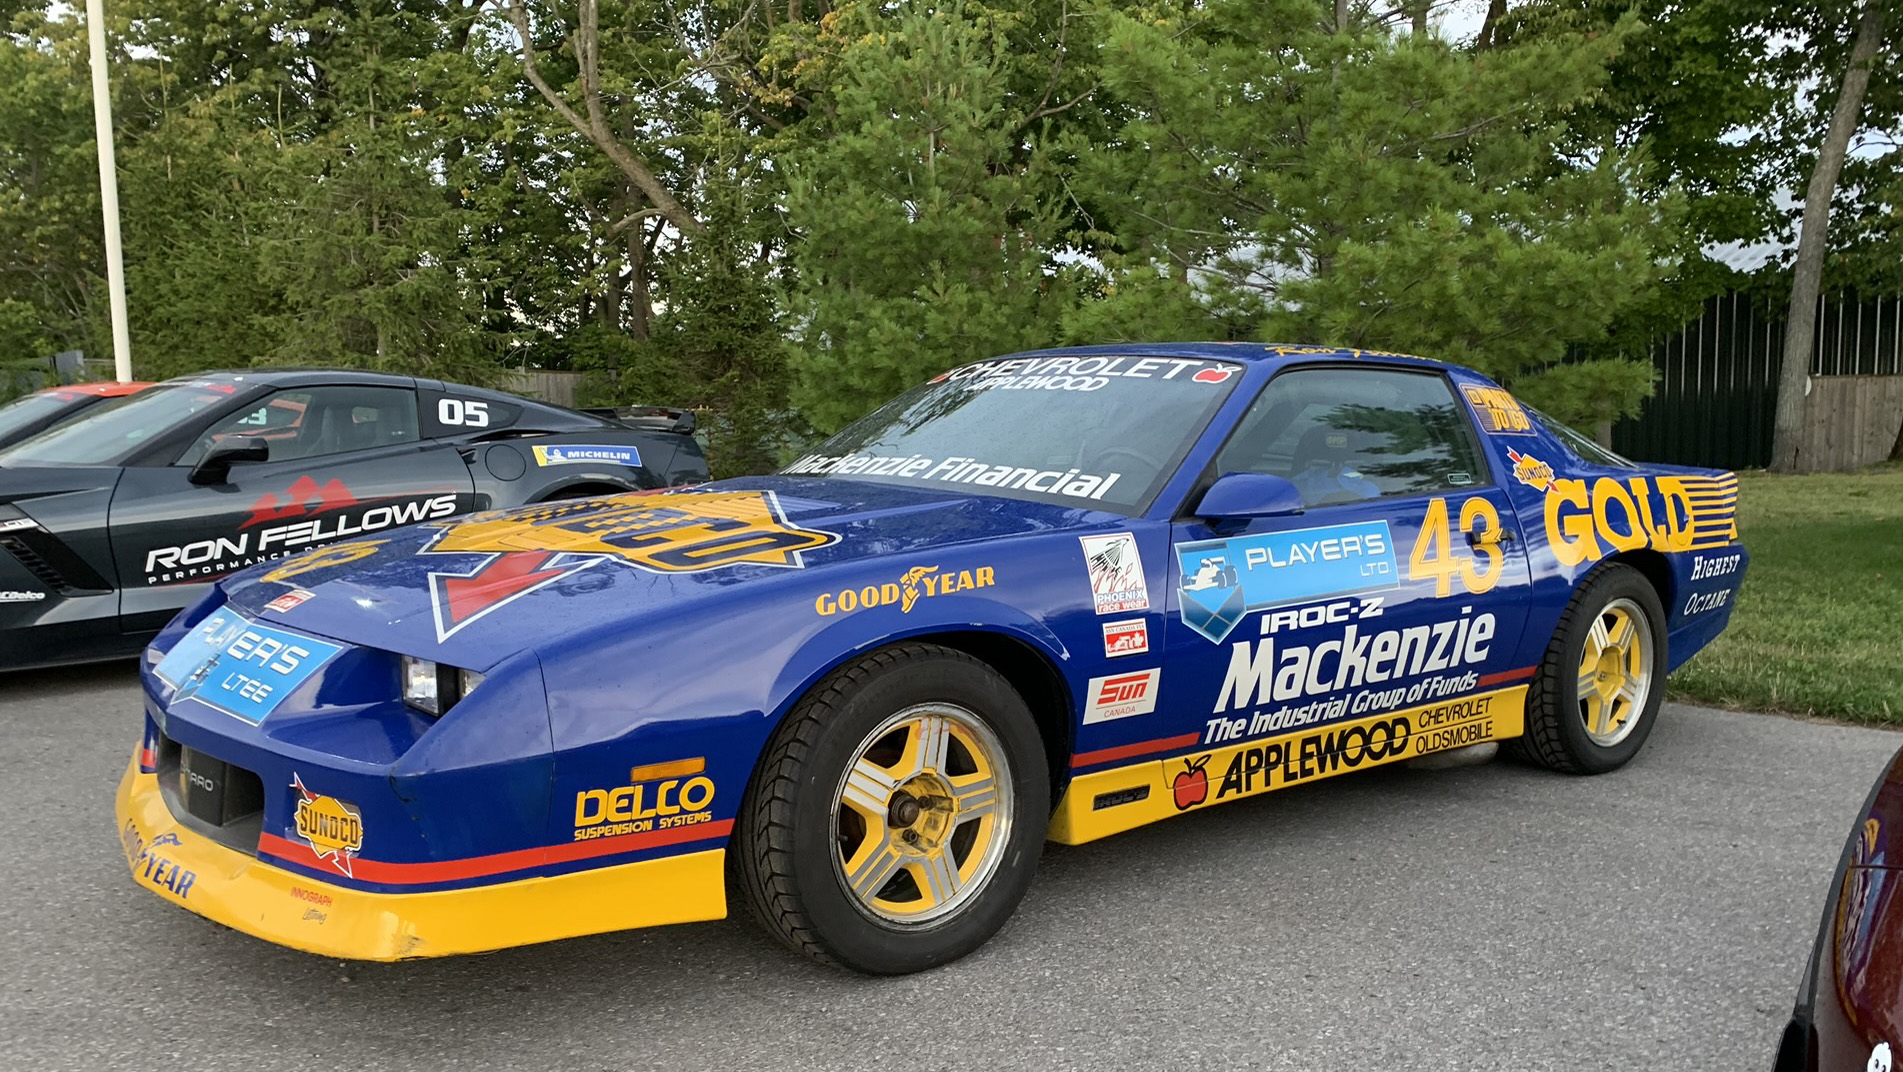 Ron Fellow 1989 Camaro IROC-Z